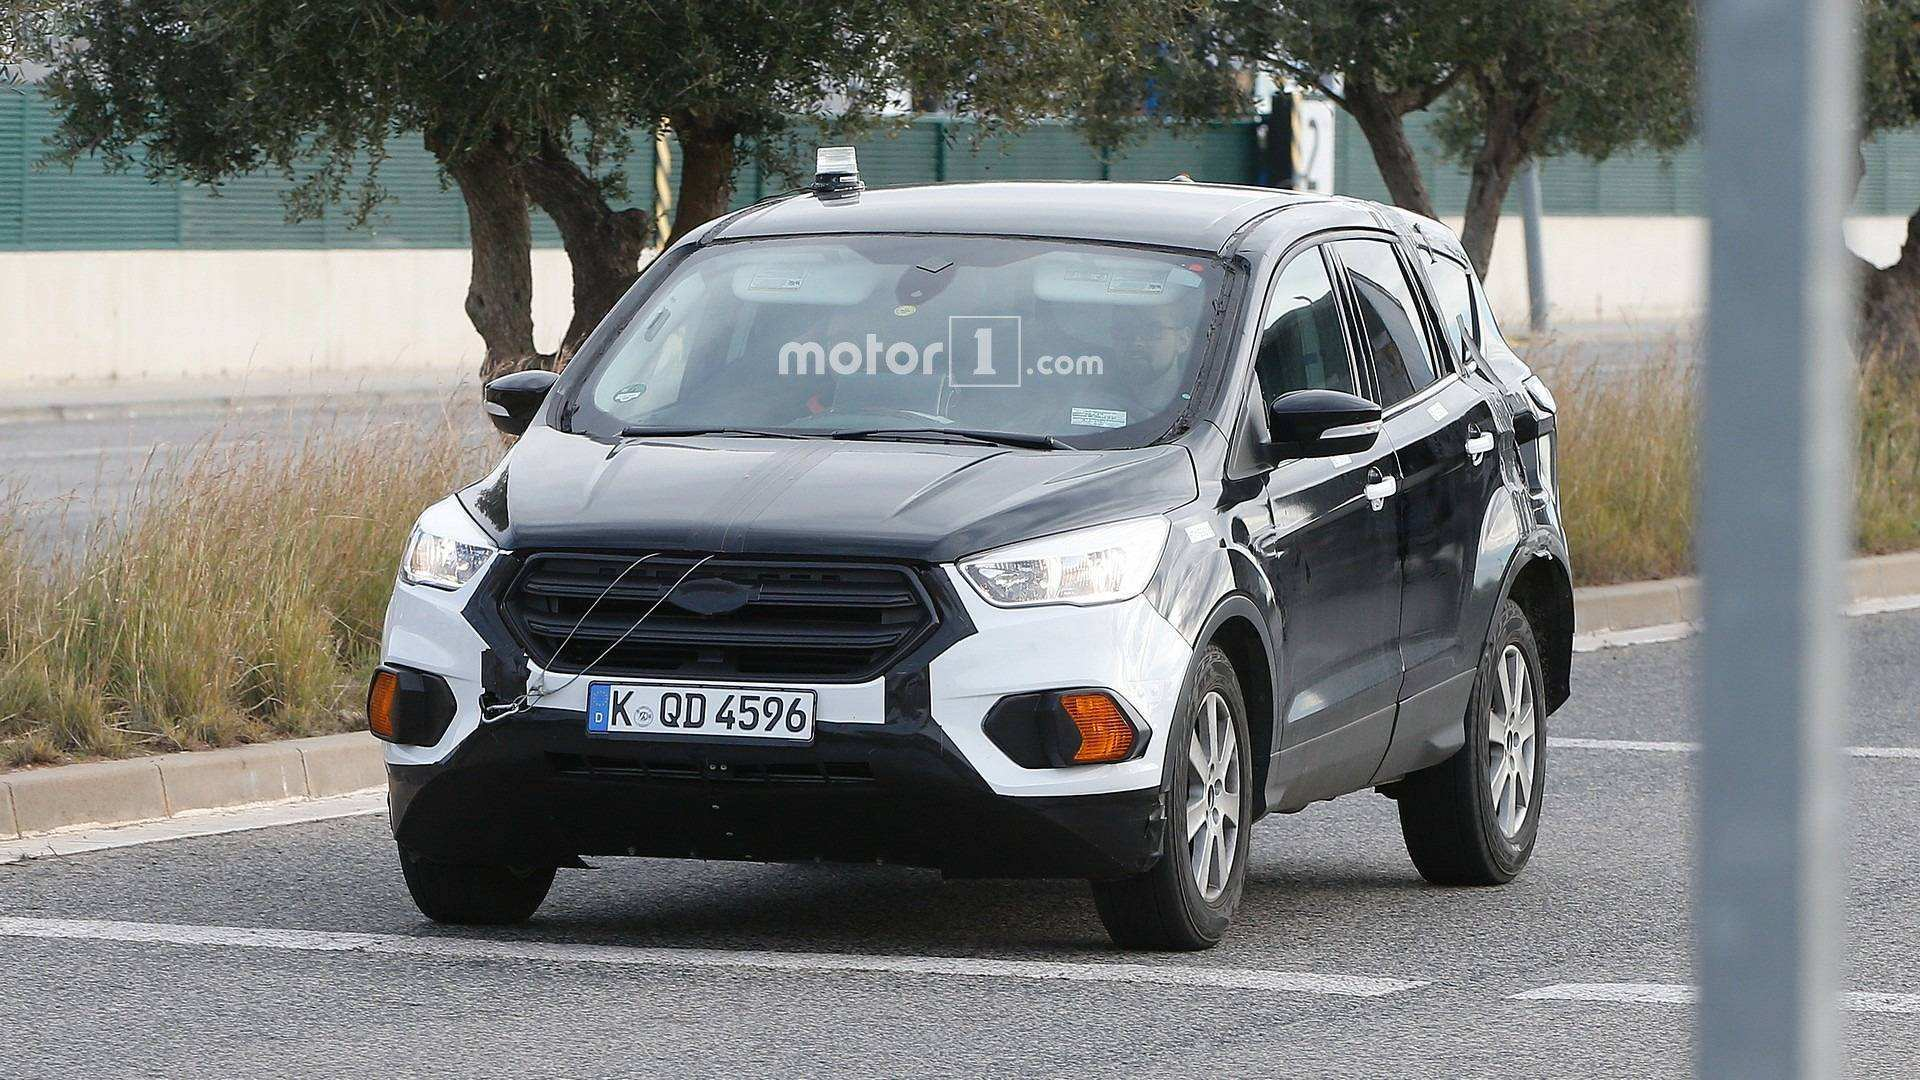 55 A Ford Kuga 2020 Spy Shots Overview